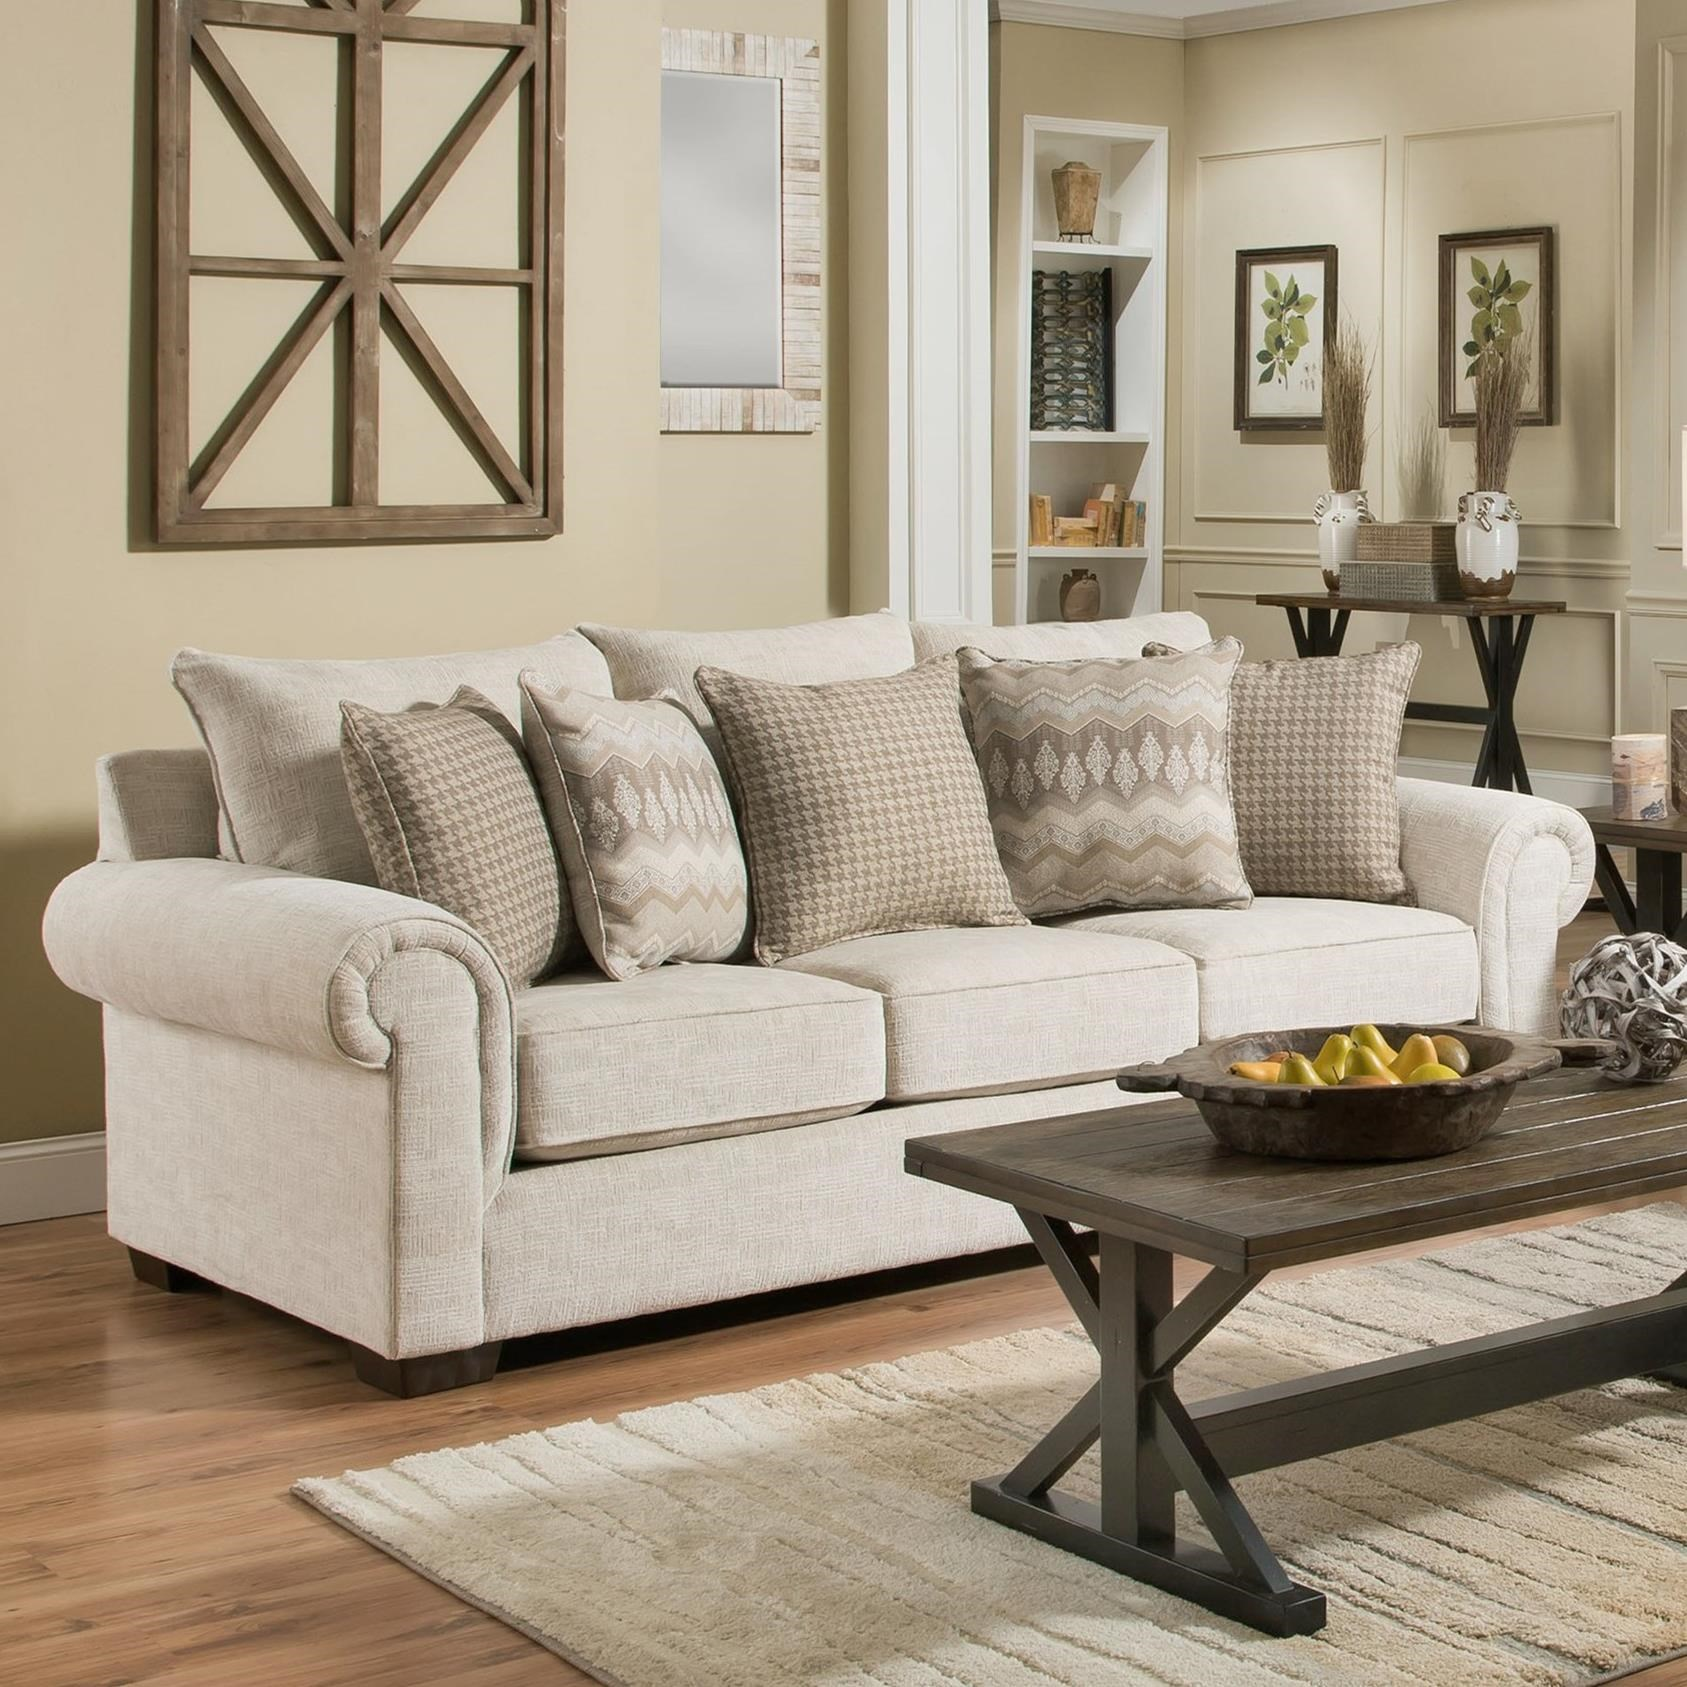 7592BR Transitional Sofa by United Furniture Industries at Household Furniture